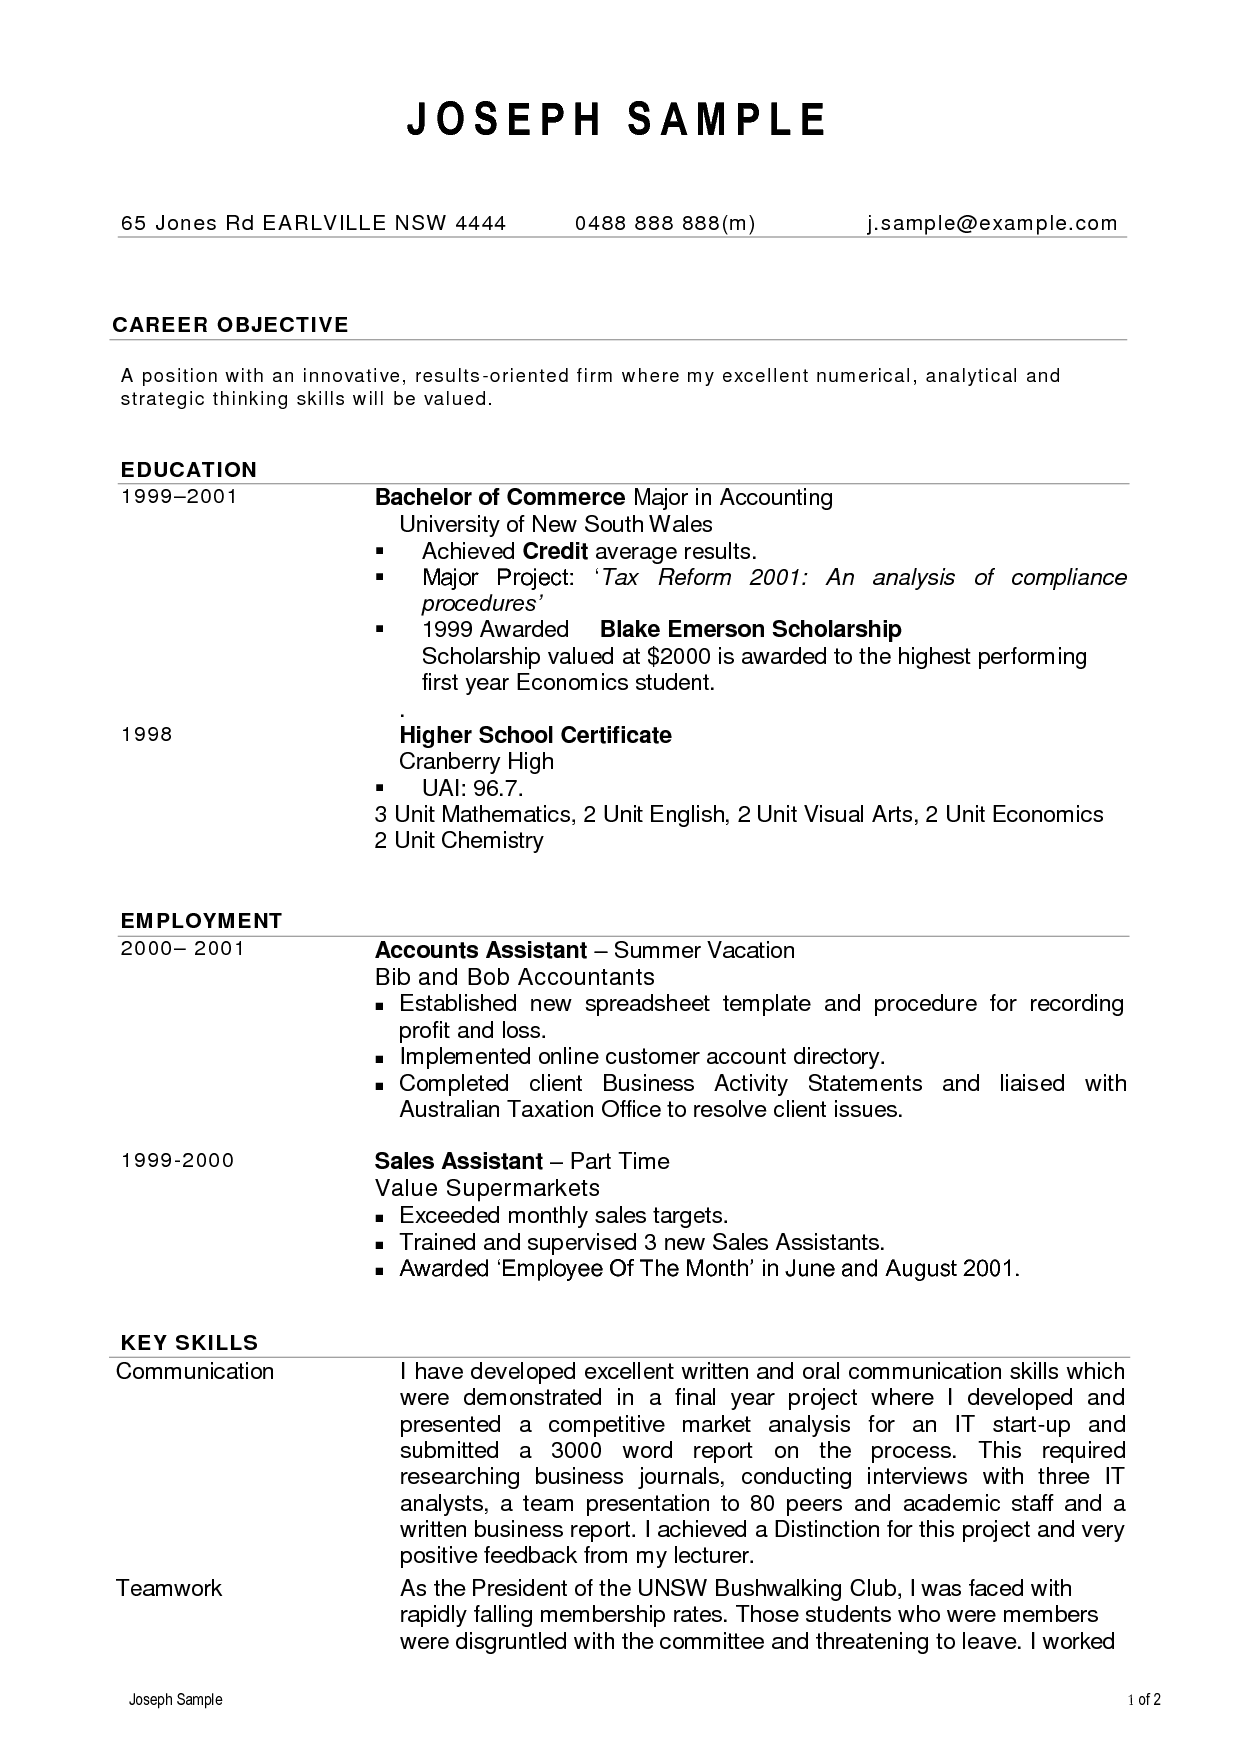 effective resume formats resume template pinterest resume format